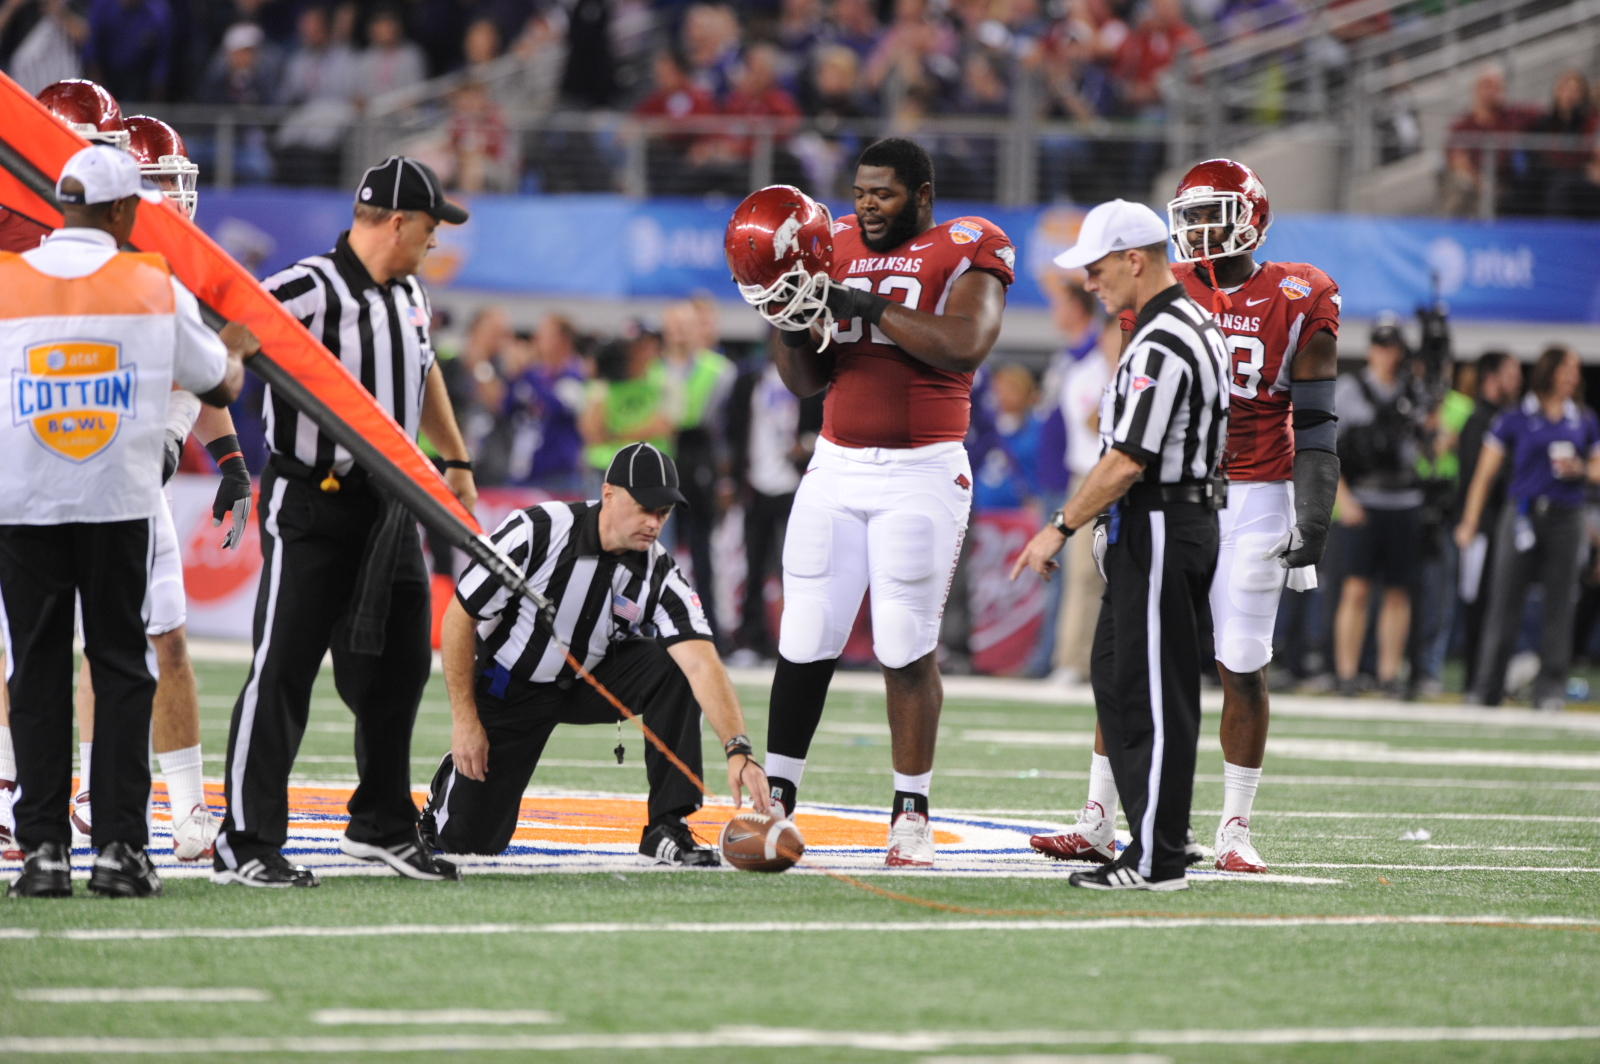 2012CottonBowl_02775IMH